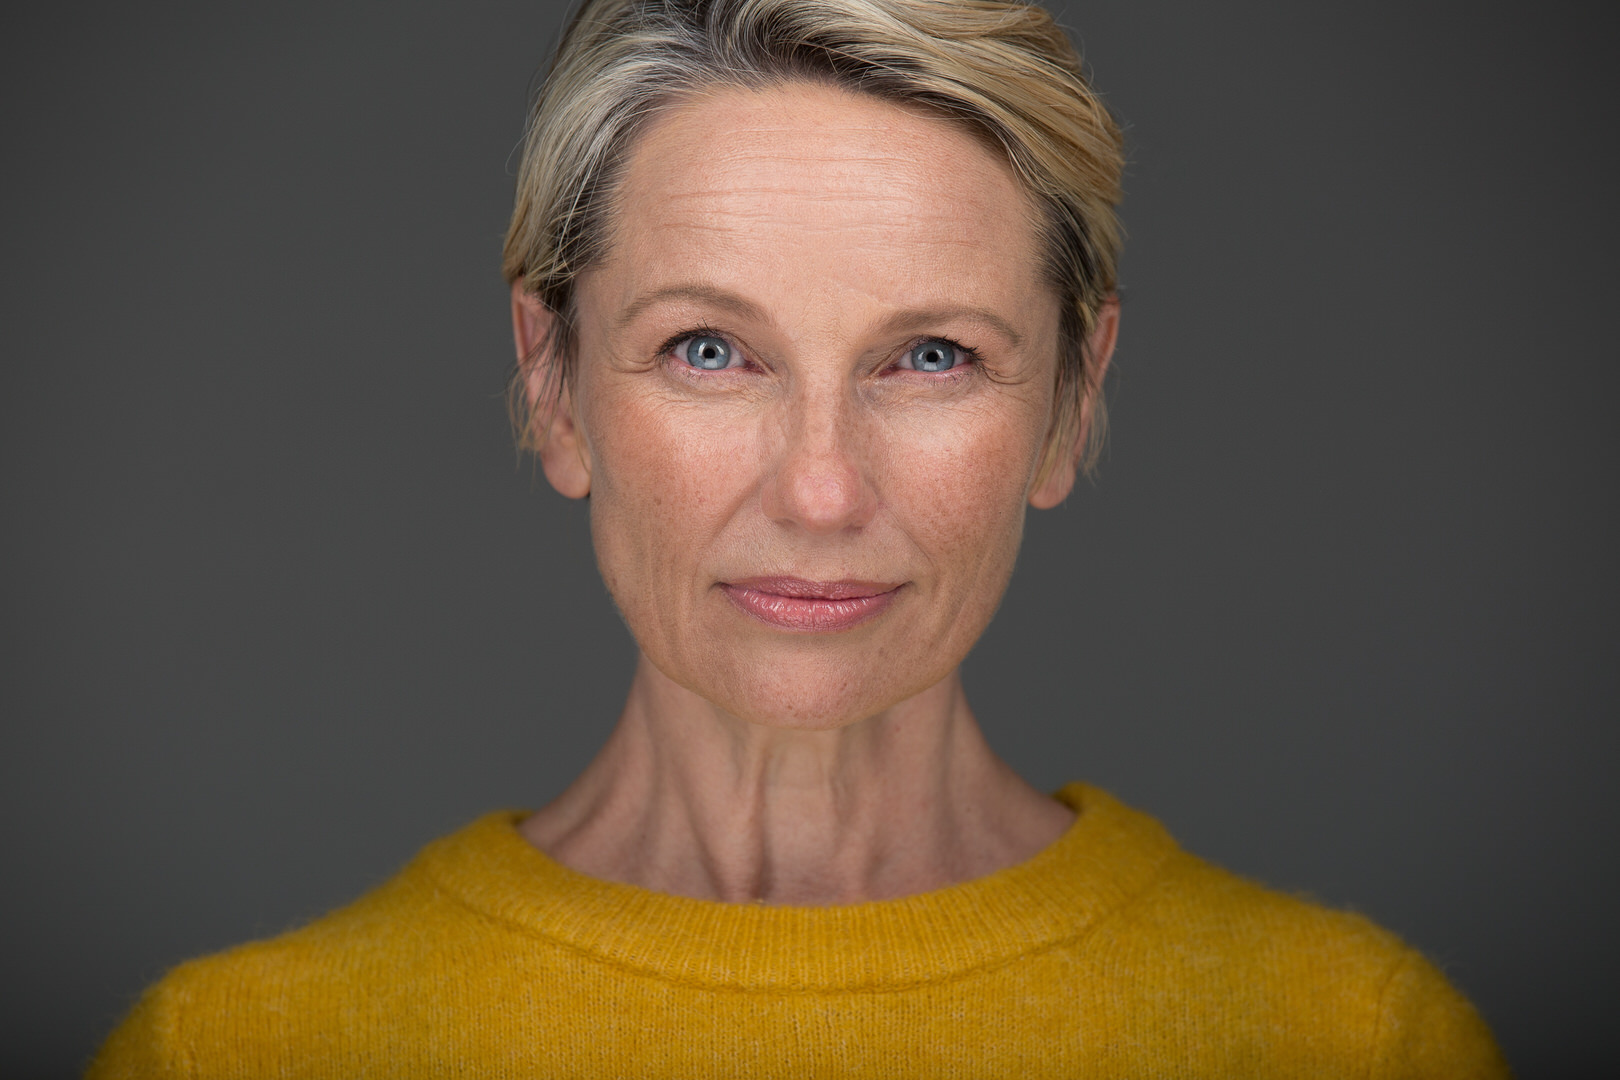 Image of Claire headshot